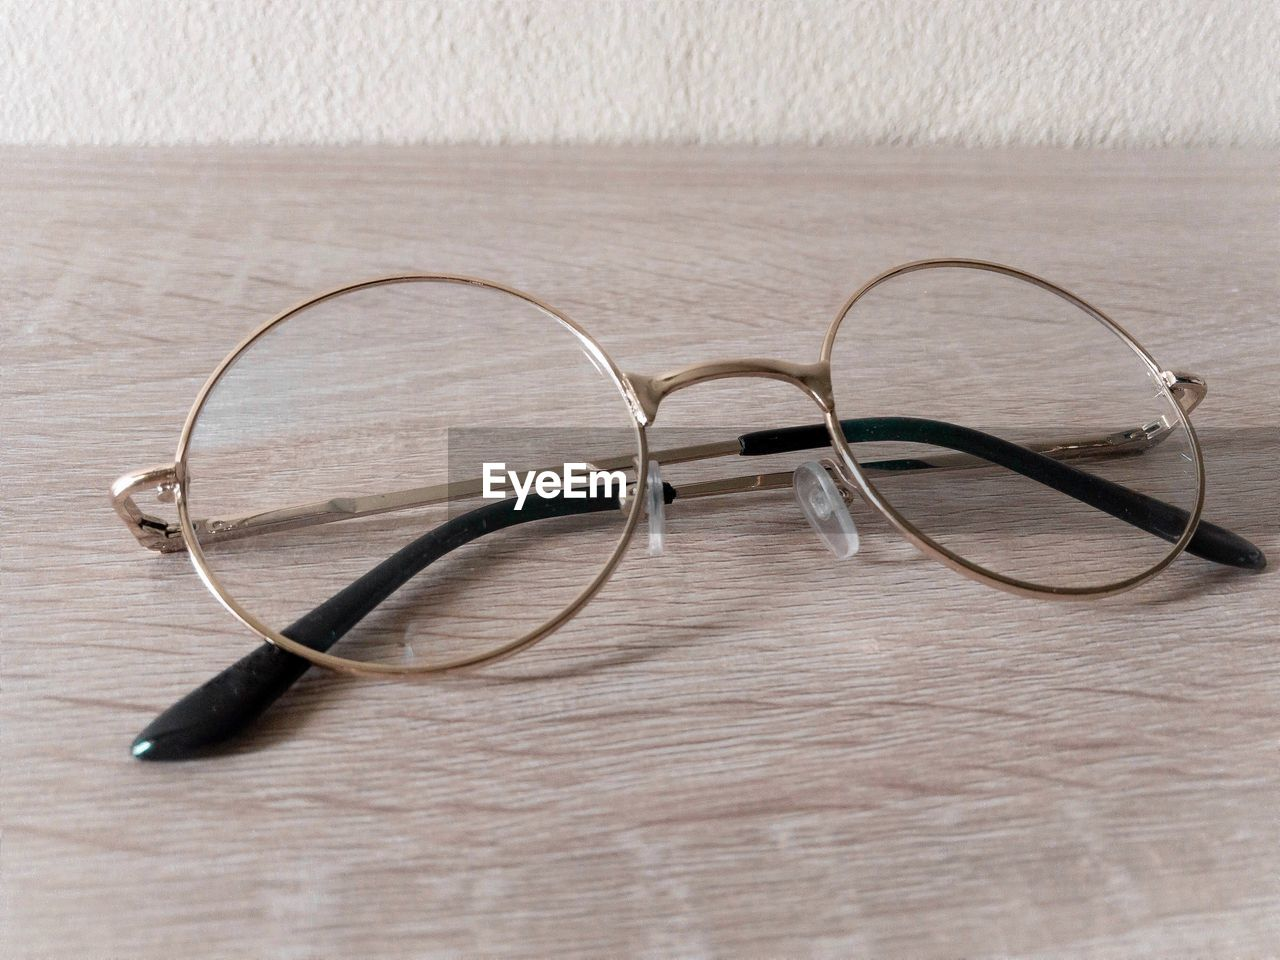 table, indoors, no people, glasses, wood - material, eyeglasses, still life, close-up, personal accessory, black color, high angle view, technology, connection, glass - material, transparent, single object, brown, wood, focus on foreground, white color, eyewear